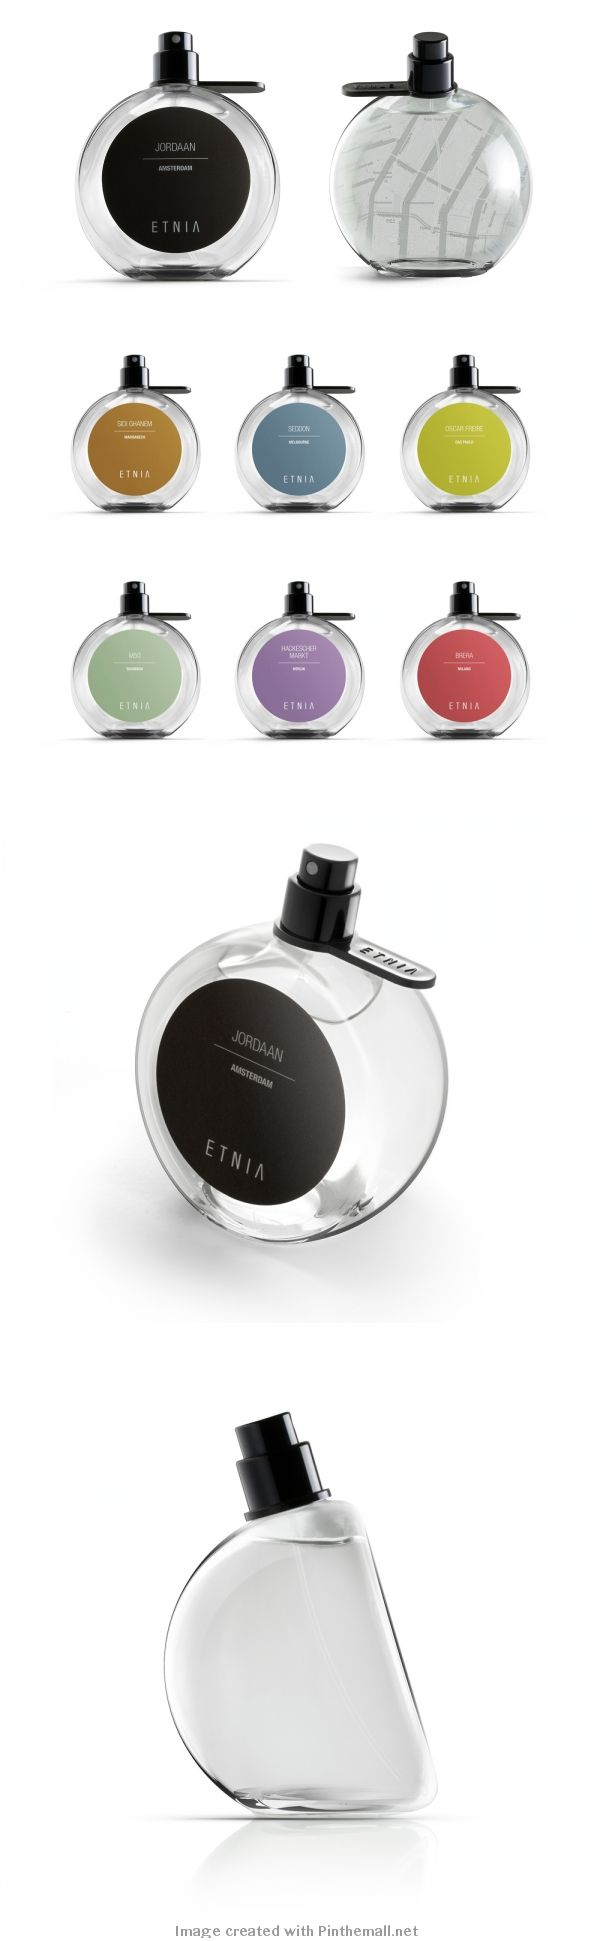 Map embedded ETNIA #fragrance #packaging PD One sniff and you are transported to another country created via http://www.thedieline.com/blog/2014/2/21/etnia